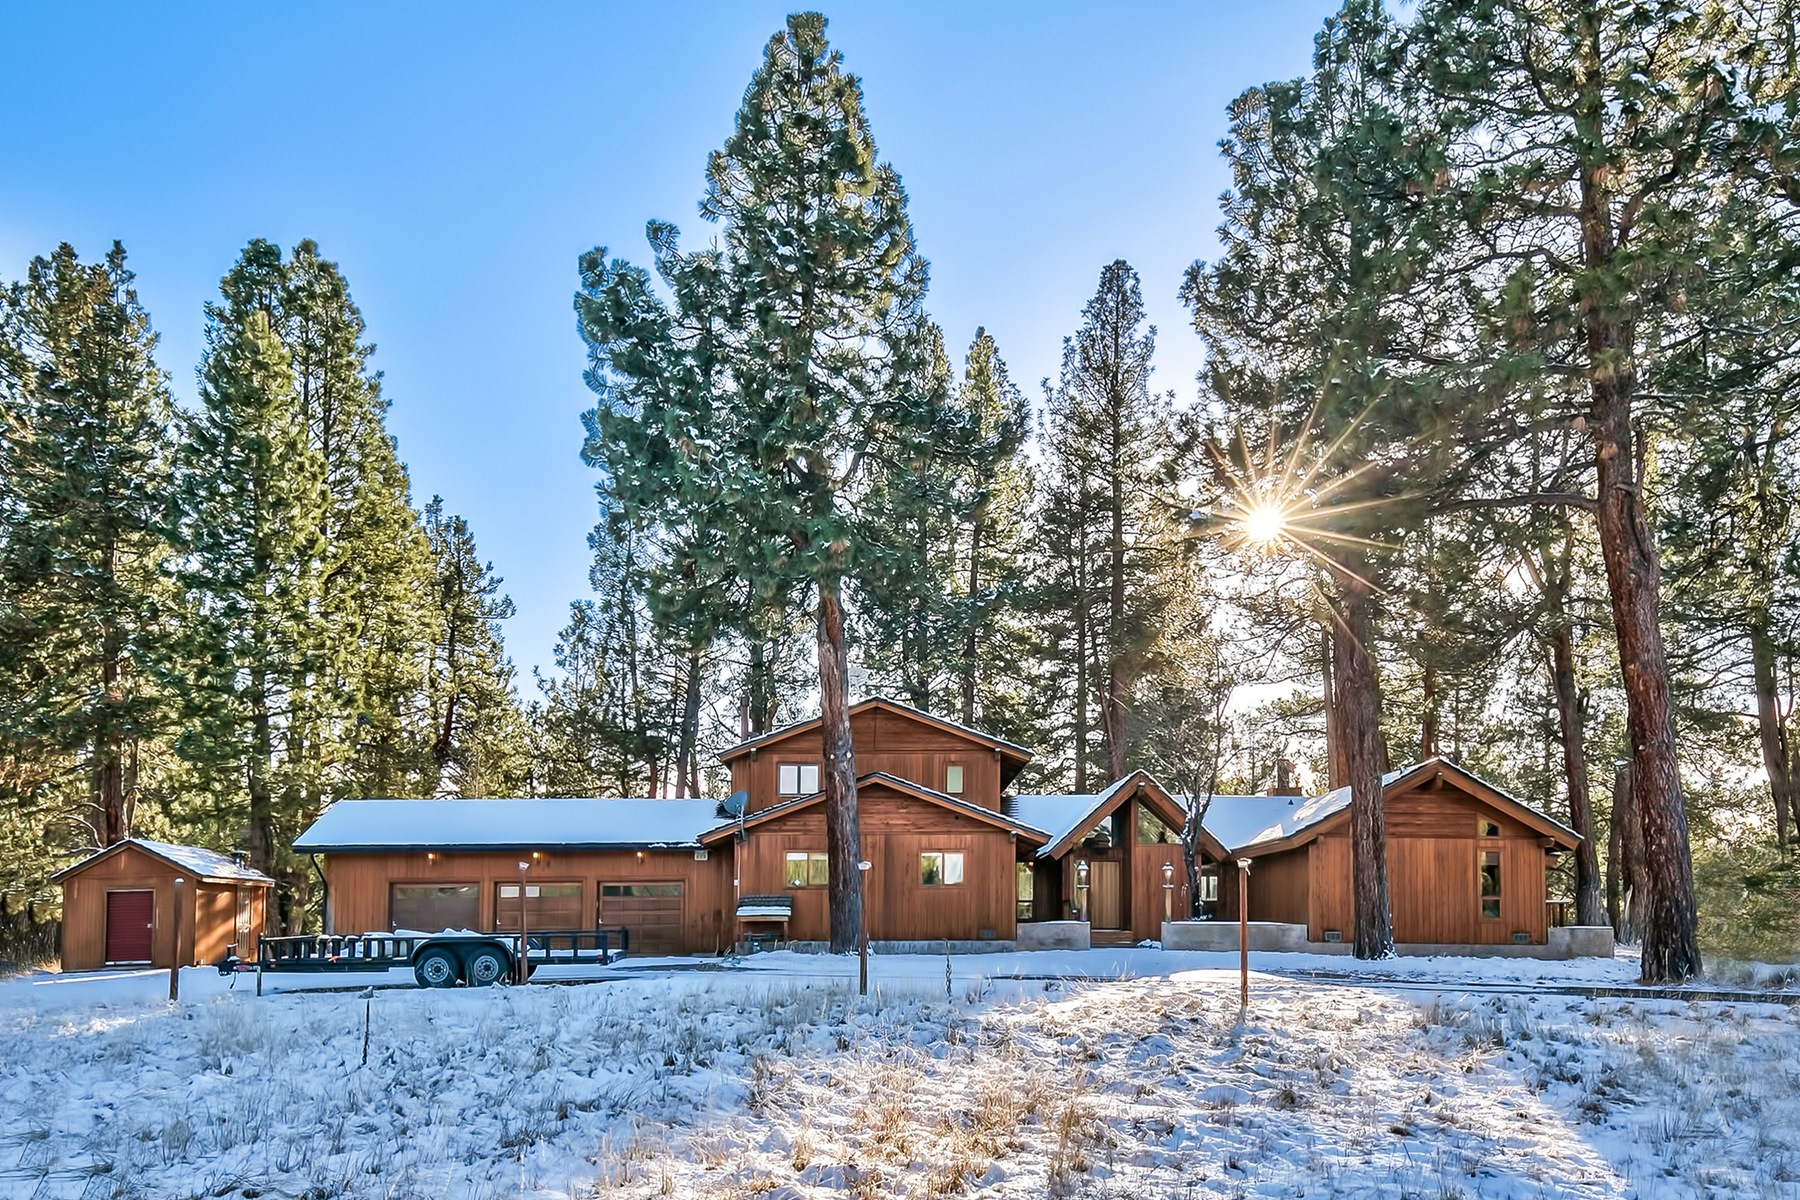 Single Family Home for Sale at 11687 Moon Shadow Court 11687 Moon Shadow Ct. Truckee, California 96161 United States